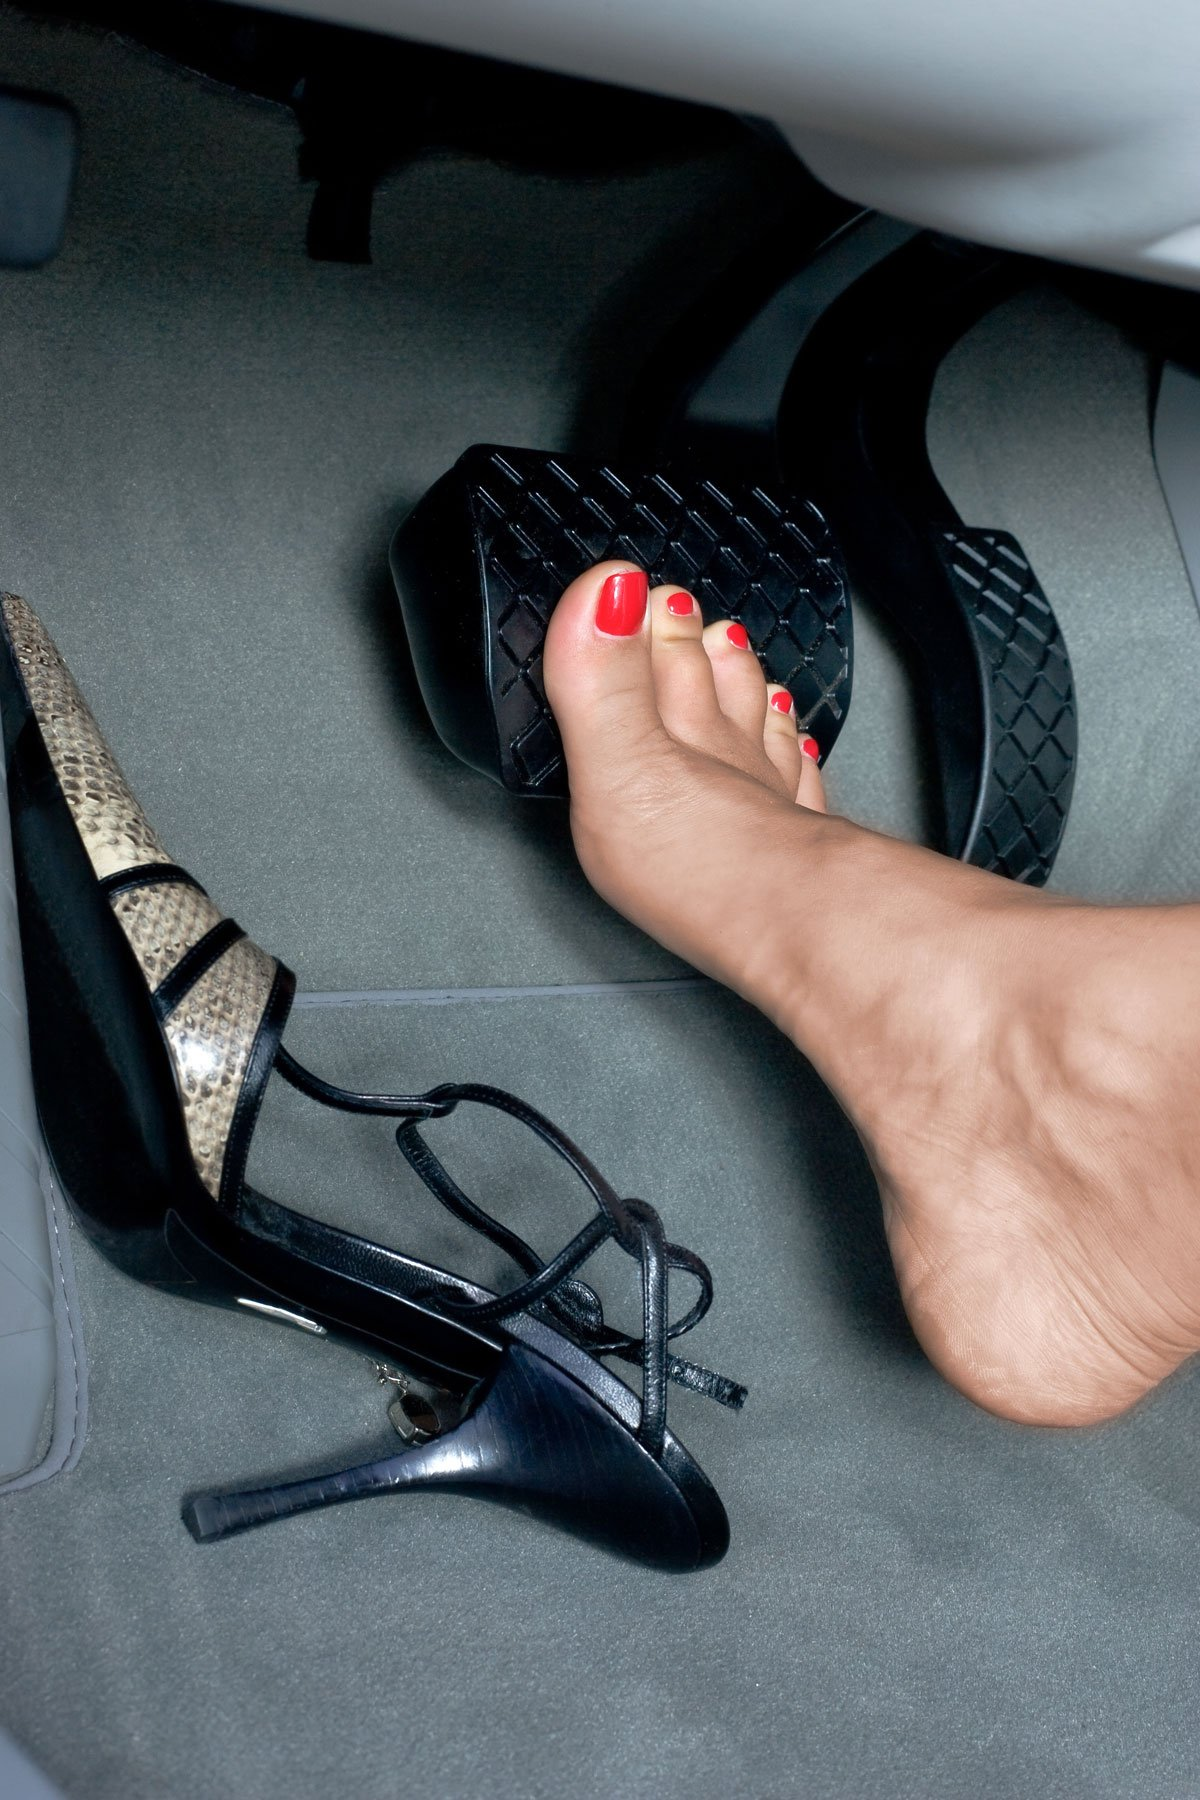 can i drive barefoot for the driving test?